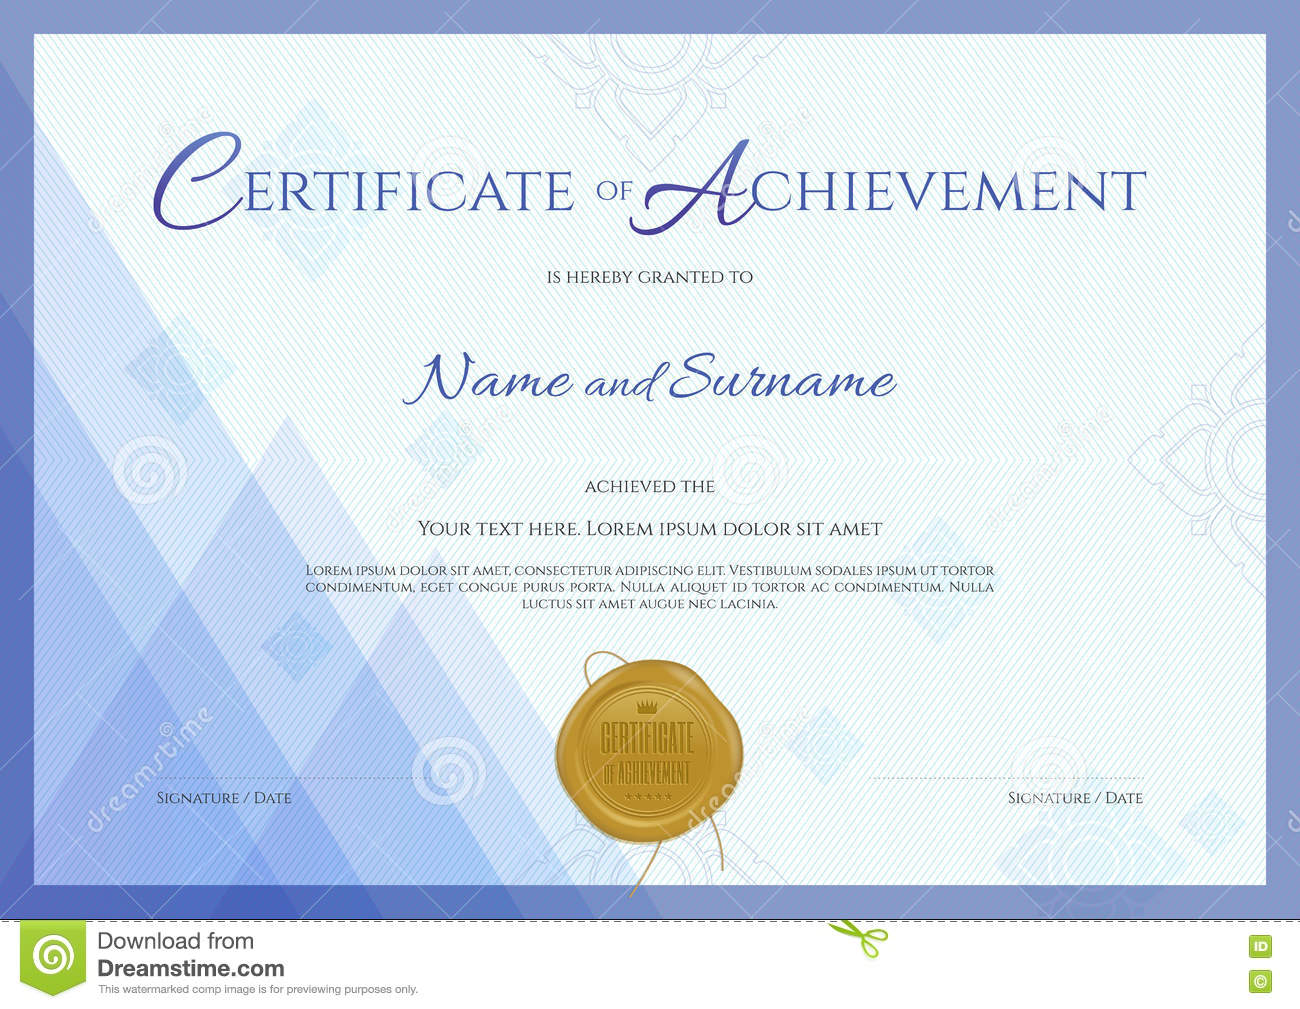 Certificate Of Achievement Template With Blue Theme Background  Certificate Of Achievement Template